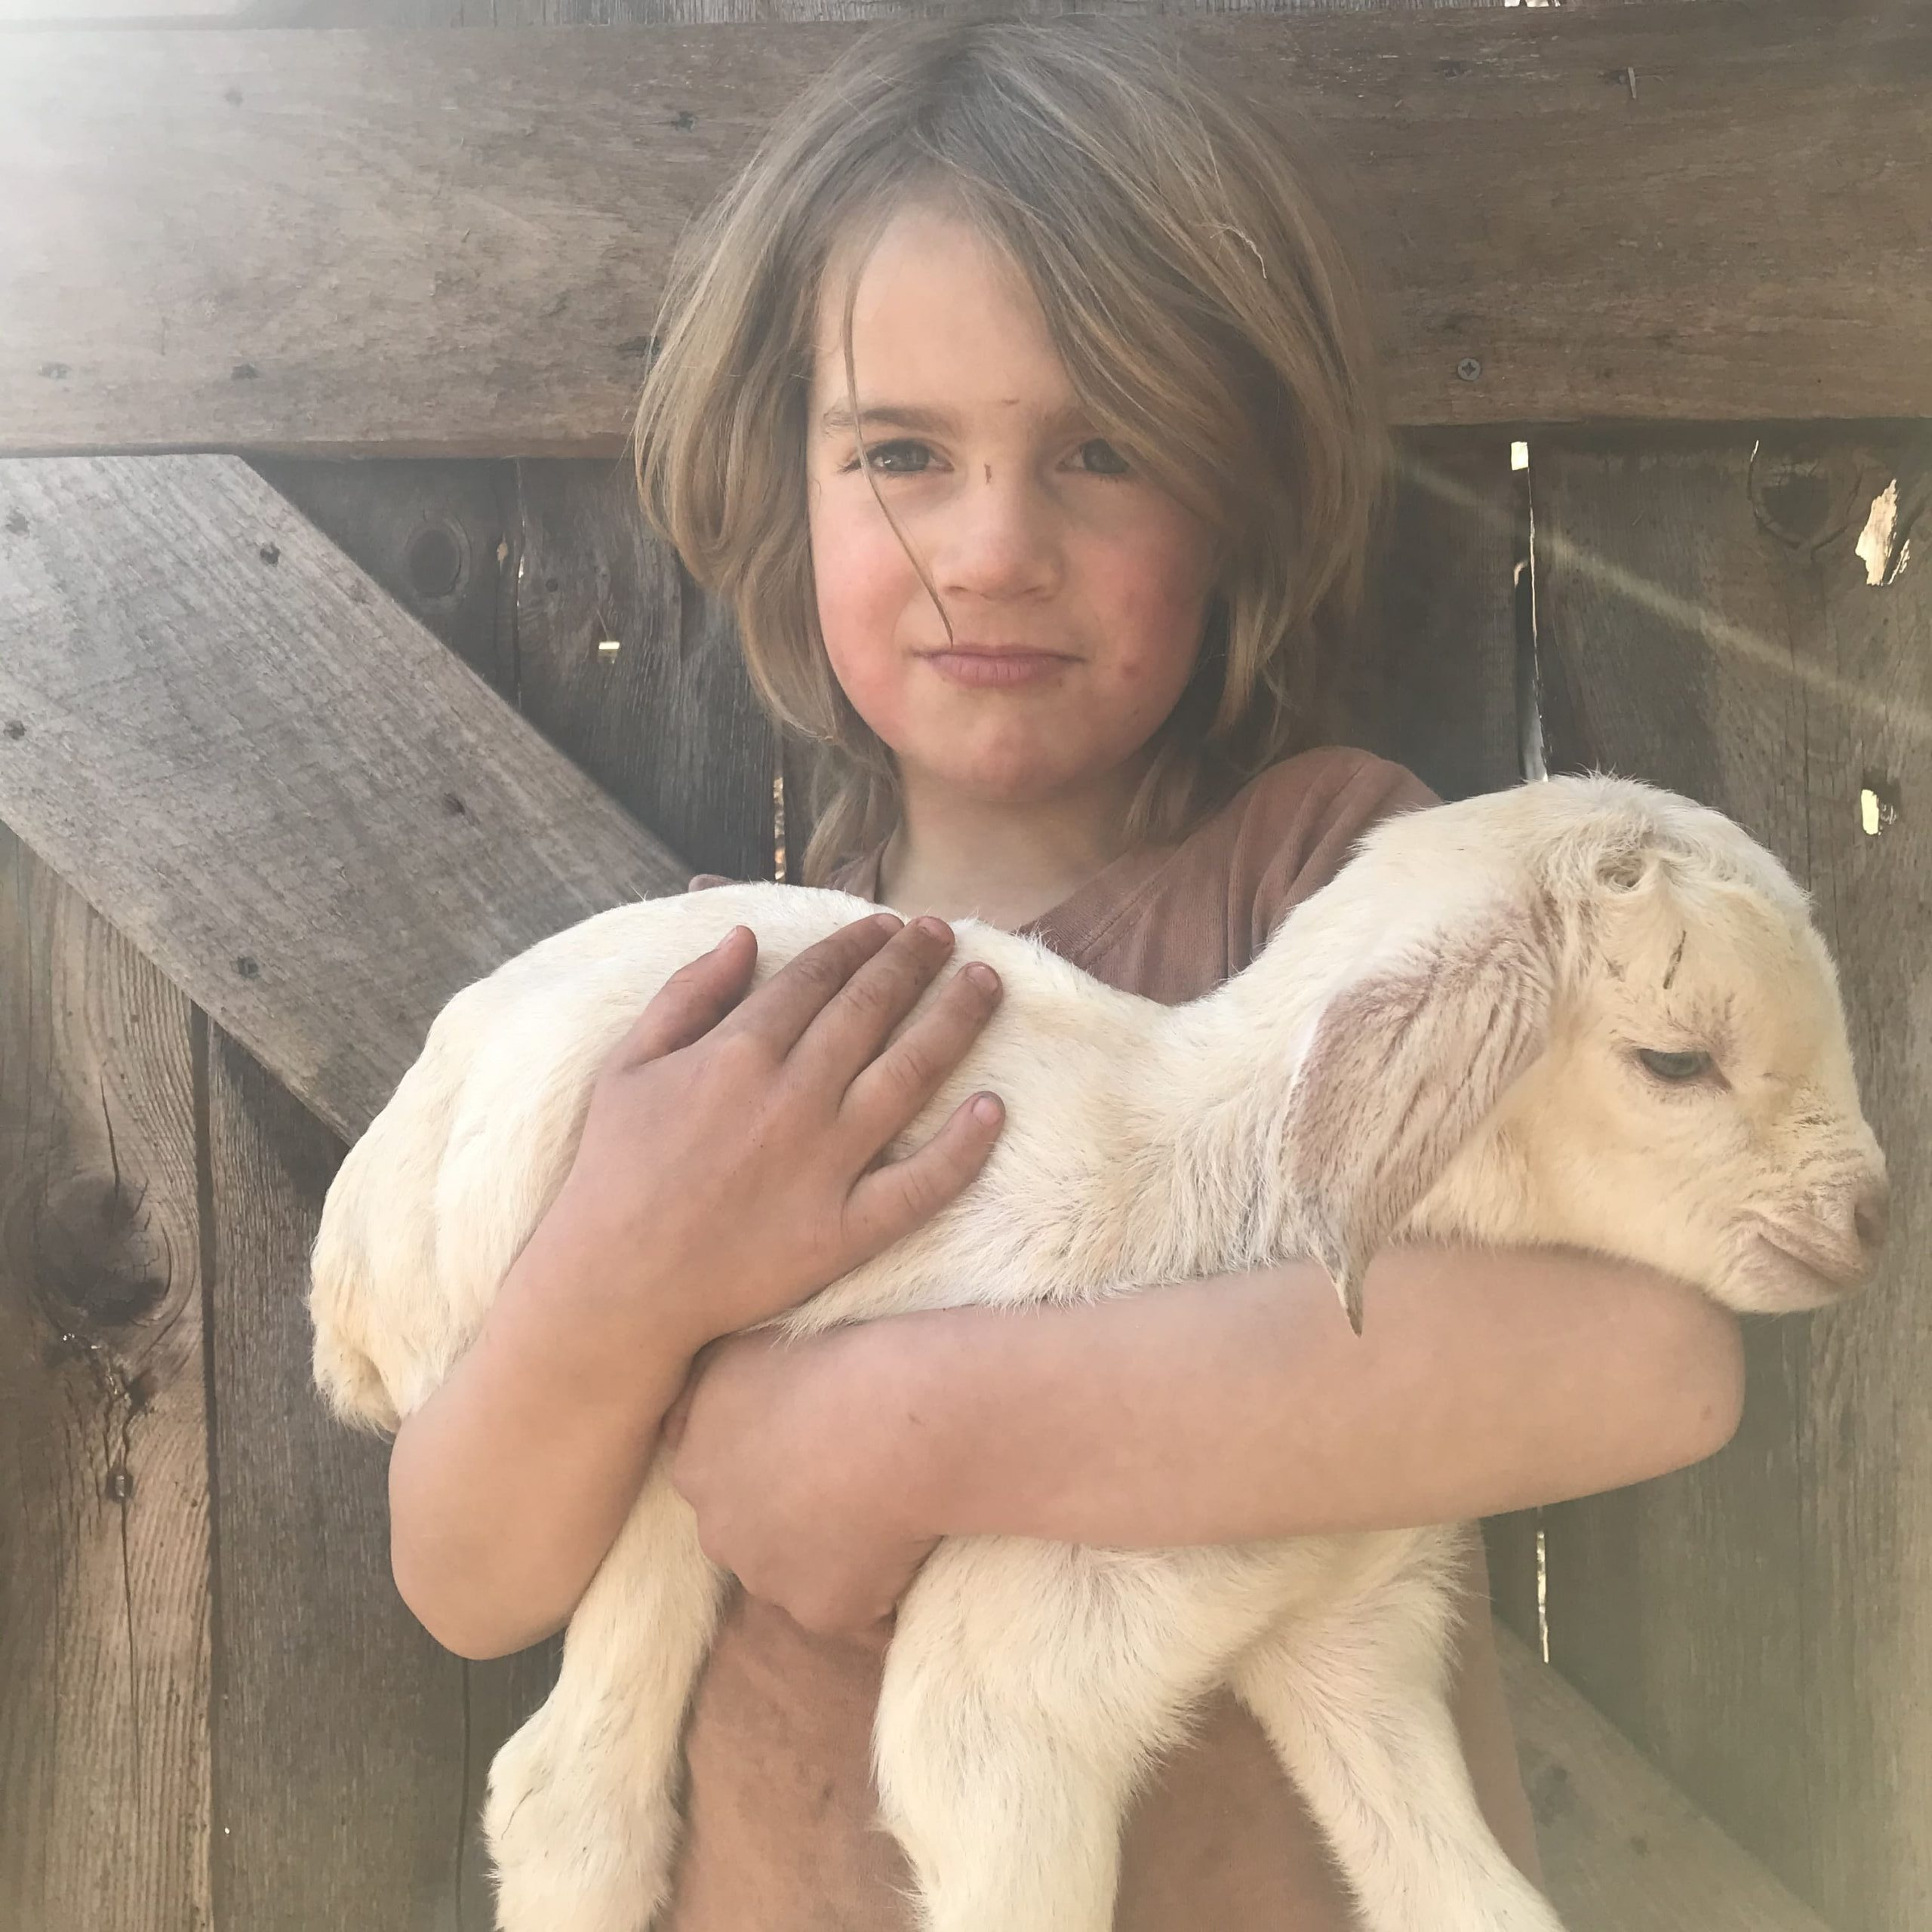 Boy with newborn goat kid